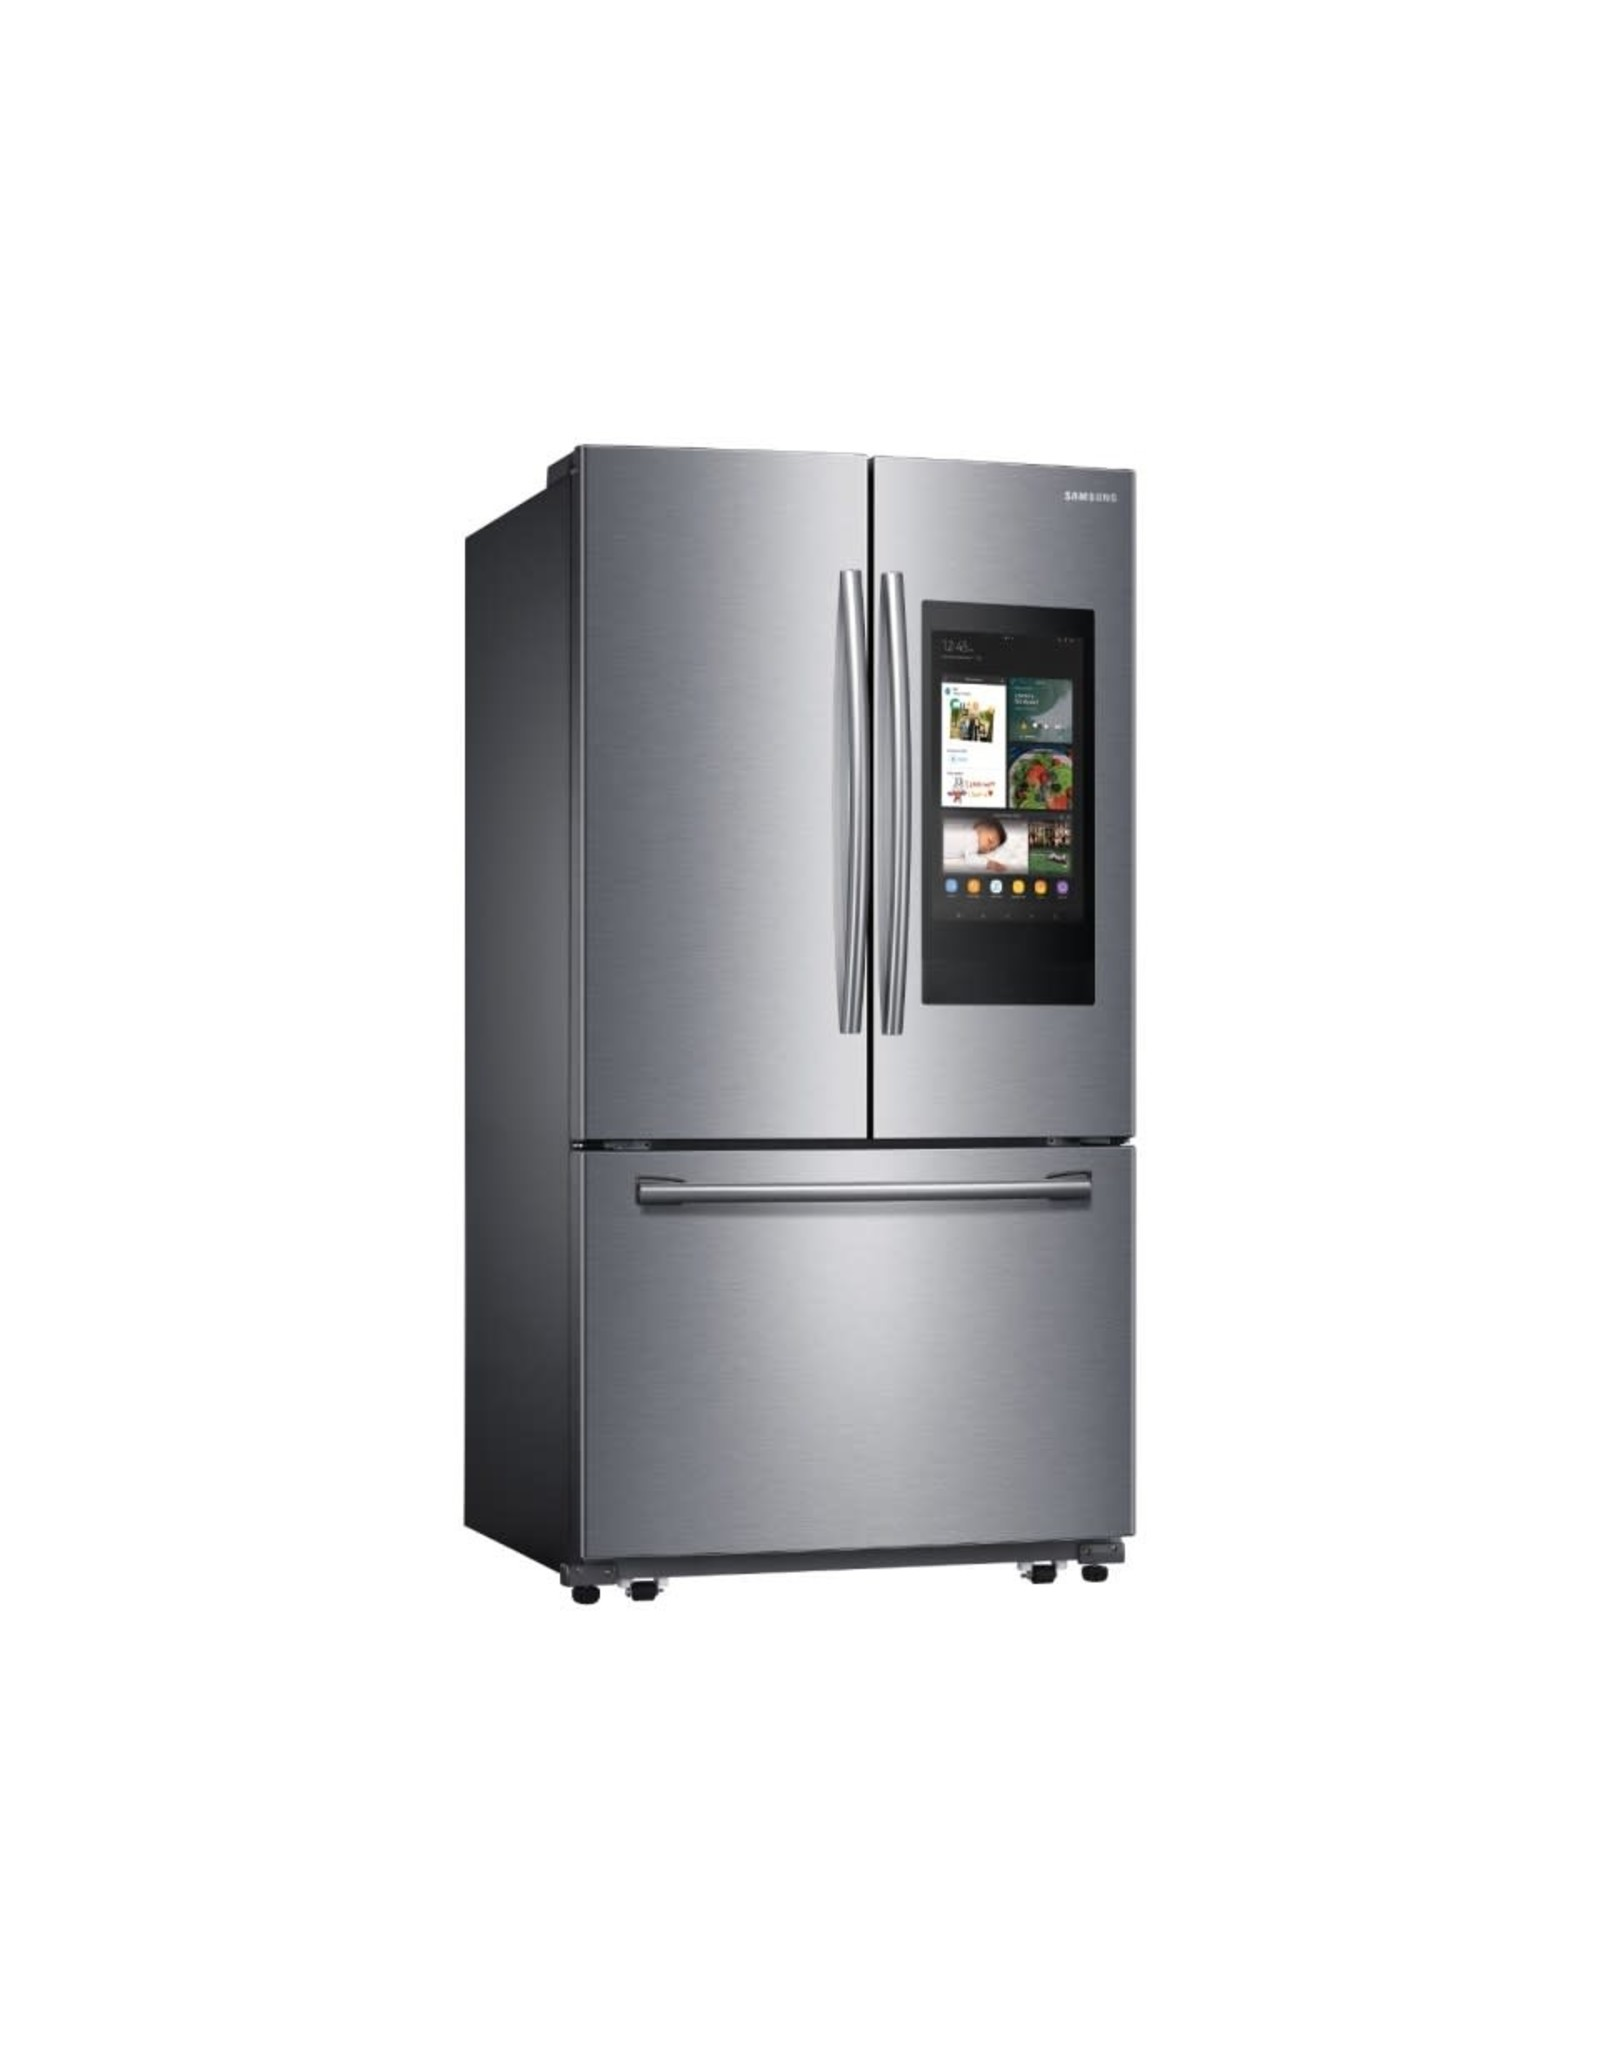 SAMSUNG RF262BEAESR 25.1 cu. ft. Family Hub French Door Smart Refrigerator in Stainless Steel